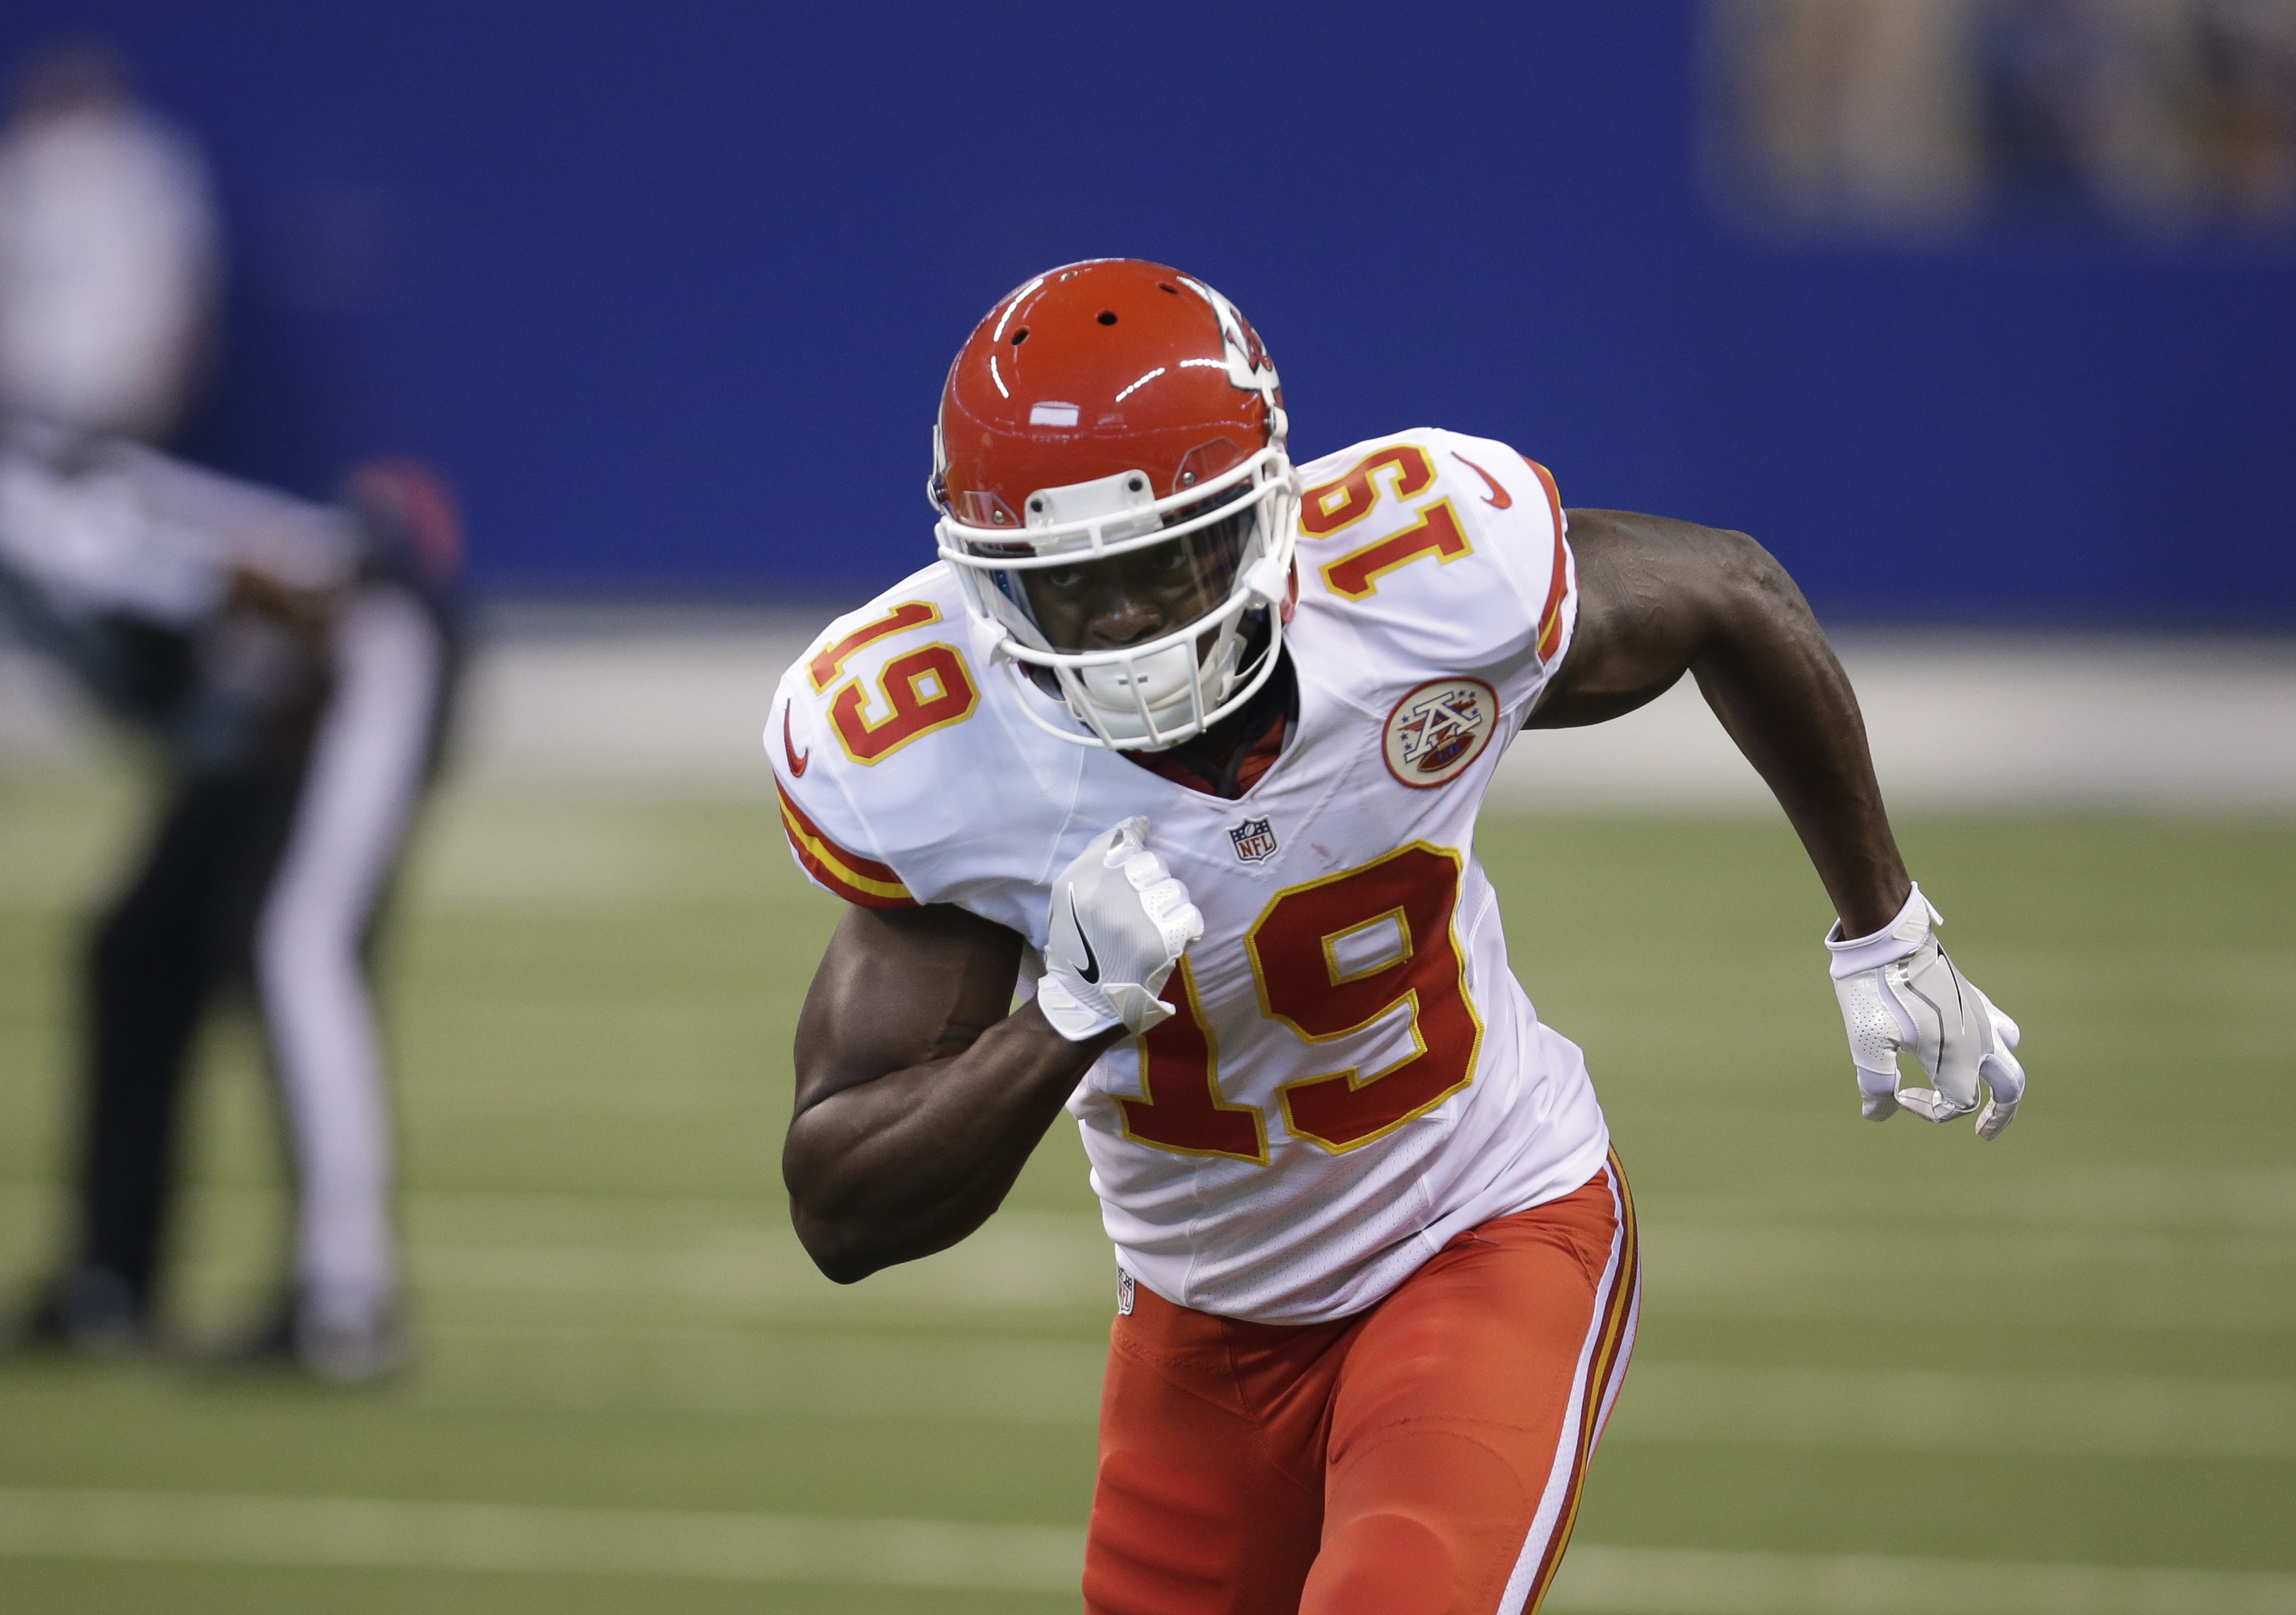 Kansas City Chiefs' Jeremy Maclin (19) runs during the first half of an NFL football game against the Indianapolis Colts, Sunday, Oct. 30, 2016, in Indianapolis. (AP Photo/AJ Mast)